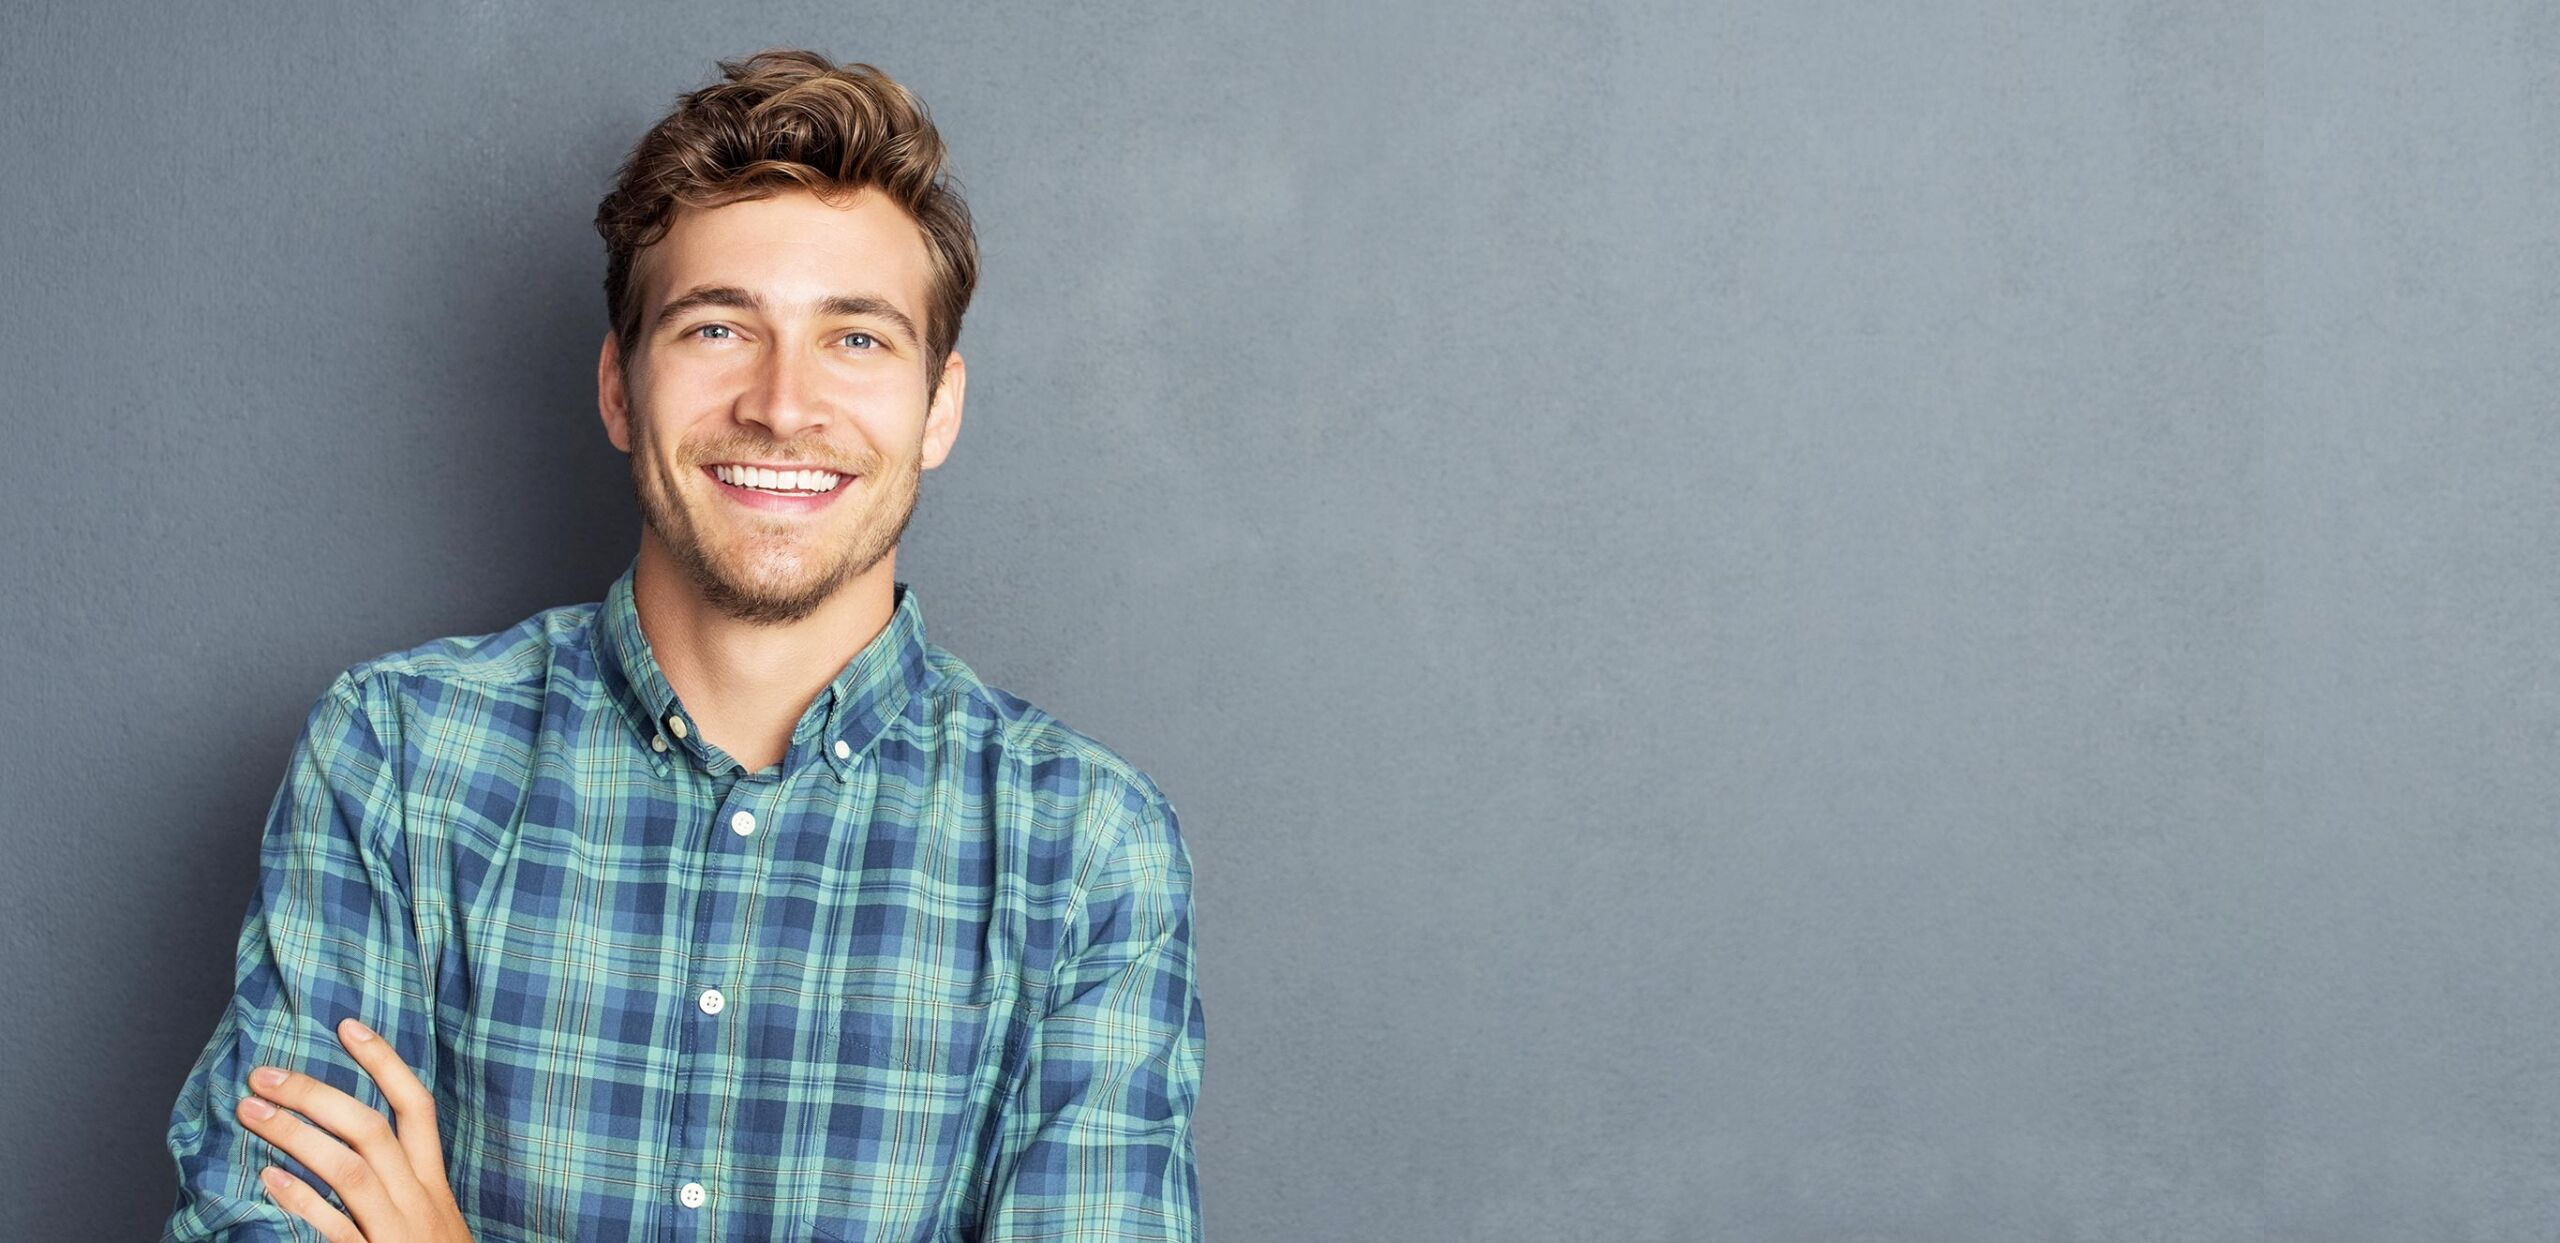 Smiling young man, Cooley Dickinson Medical Group Plastic Surgery, Florence, MA 01062.